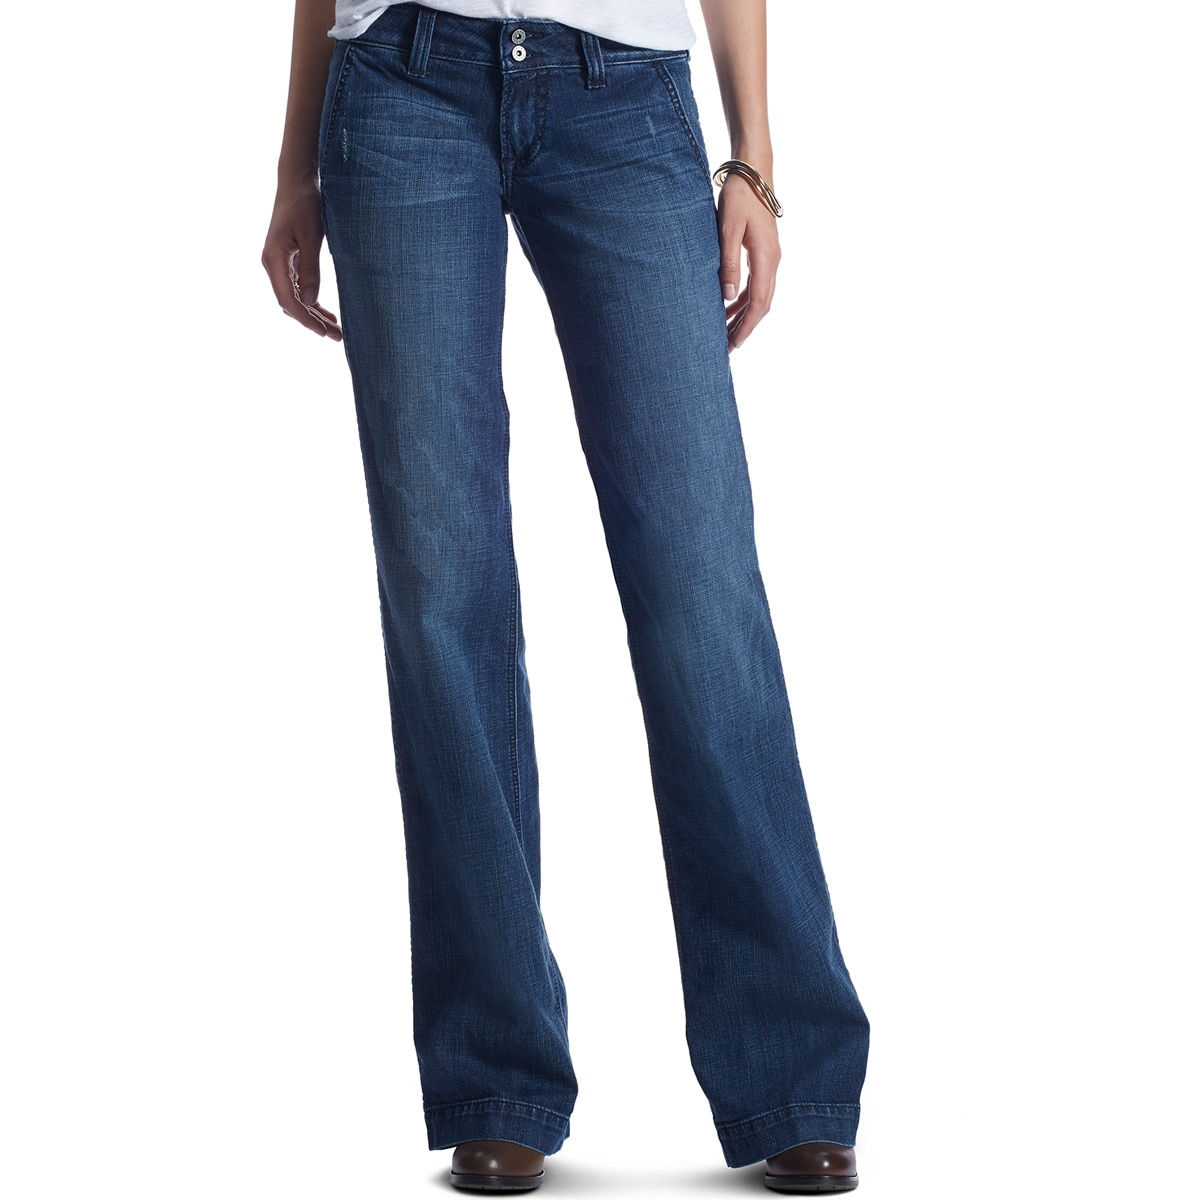 ecce345f5eb30 Ariat Women s Ella Trouser -Bluebell. Ariat International